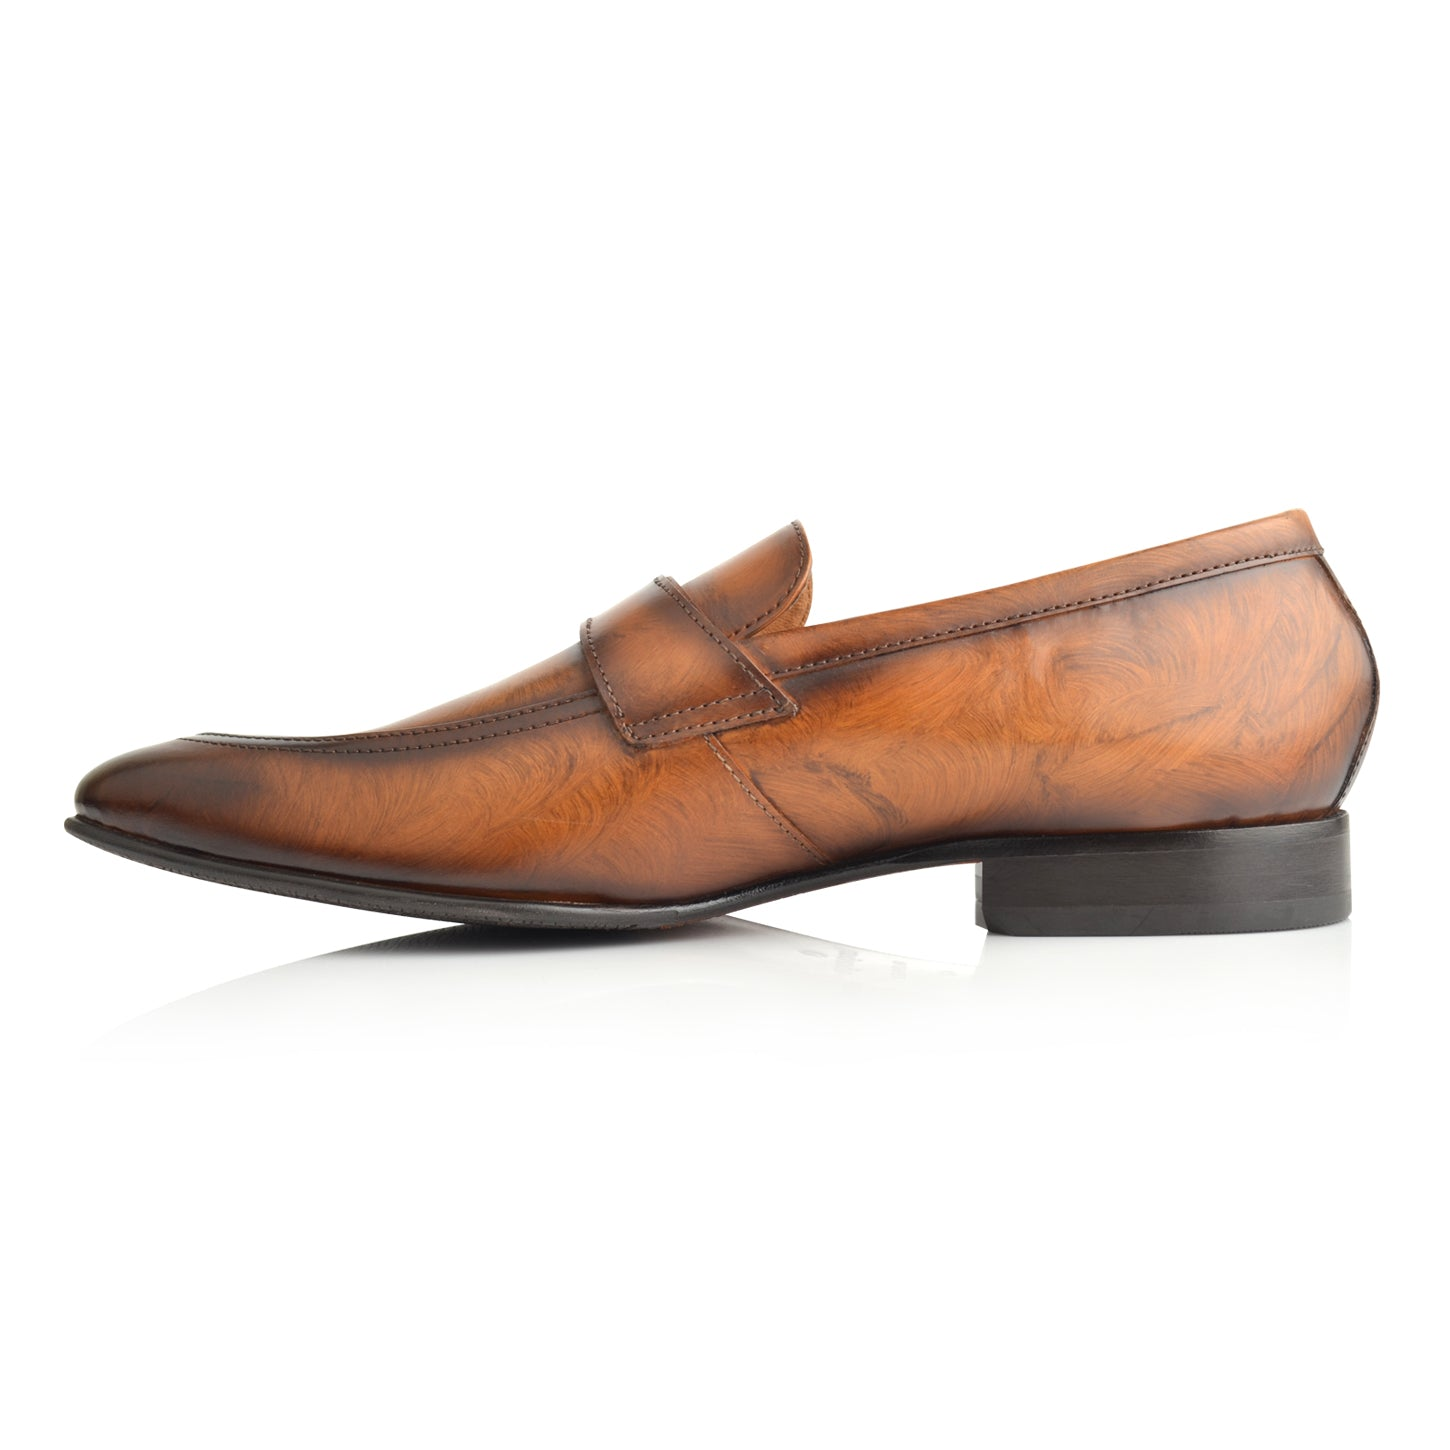 LM851 - Language Kevin Men's Tan Dress Loafers